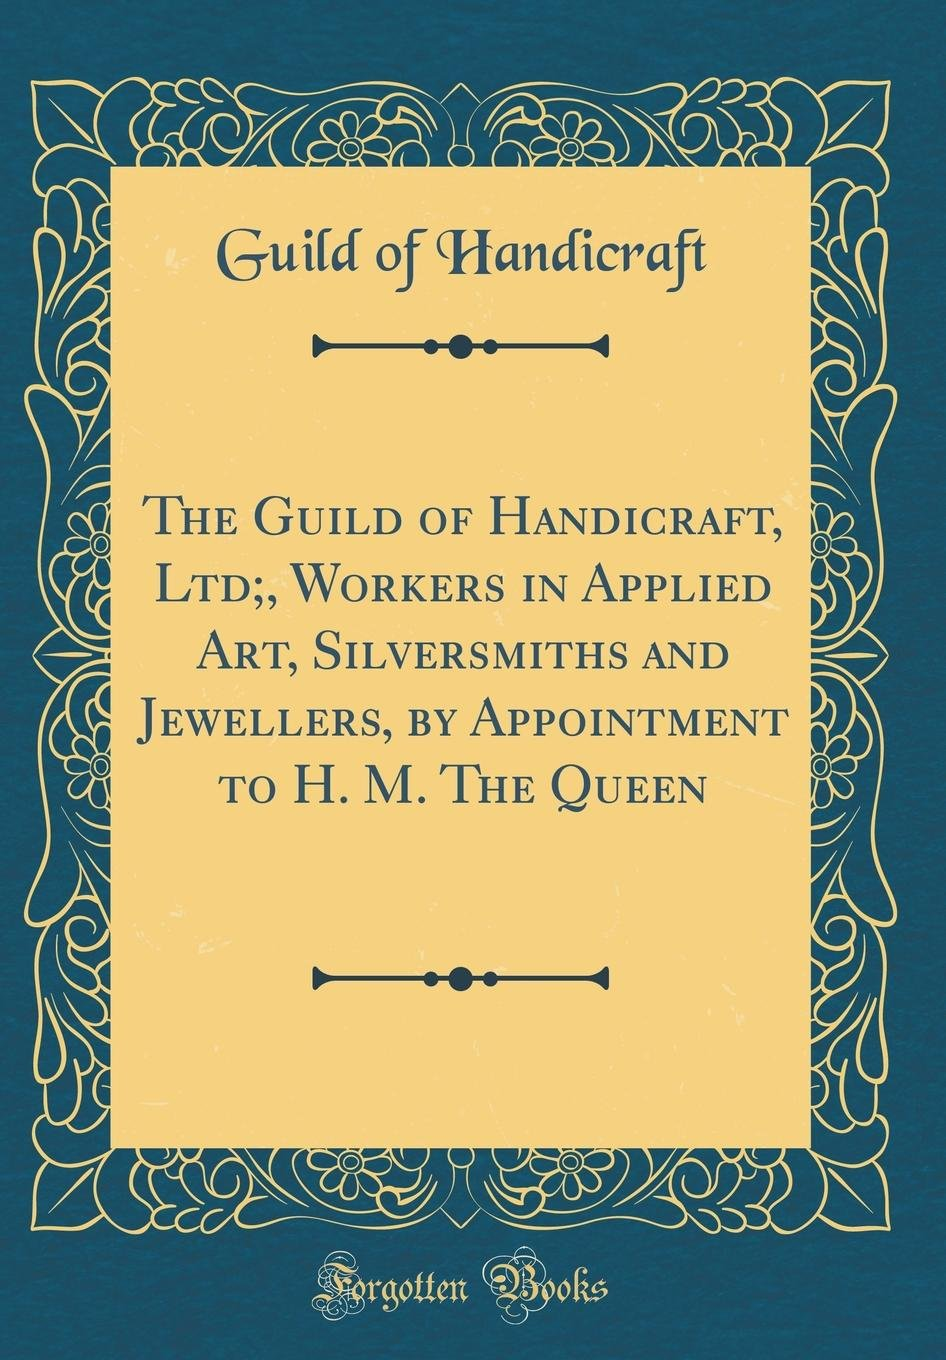 Download The Guild of Handicraft, Ltd;, Workers in Applied Art, Silversmiths and Jewellers, by Appointment to H. M. the Queen (Classic Reprint) ebook